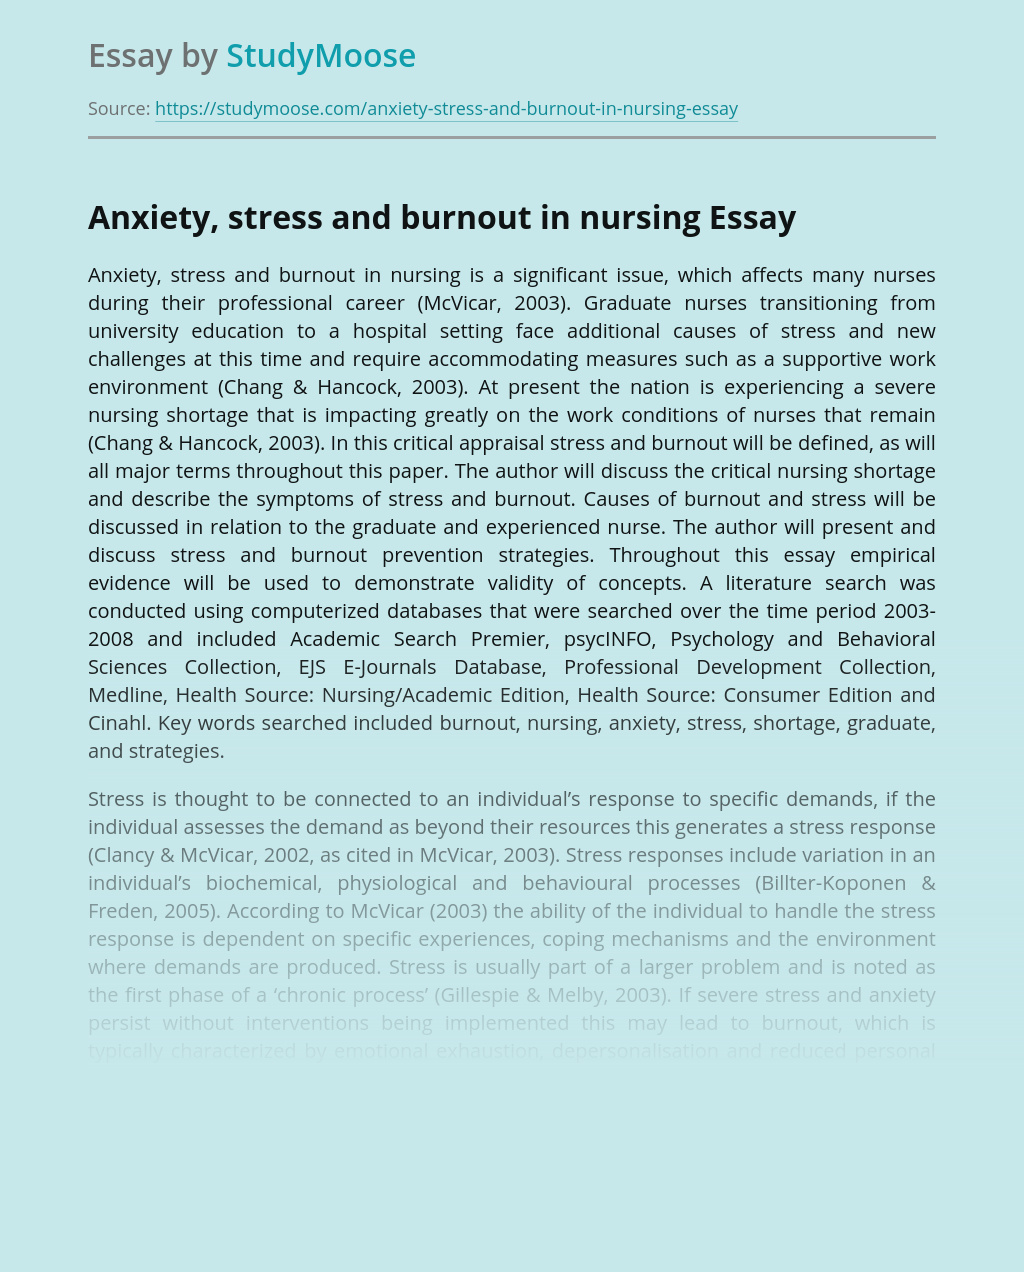 Anxiety, stress and burnout in nursing